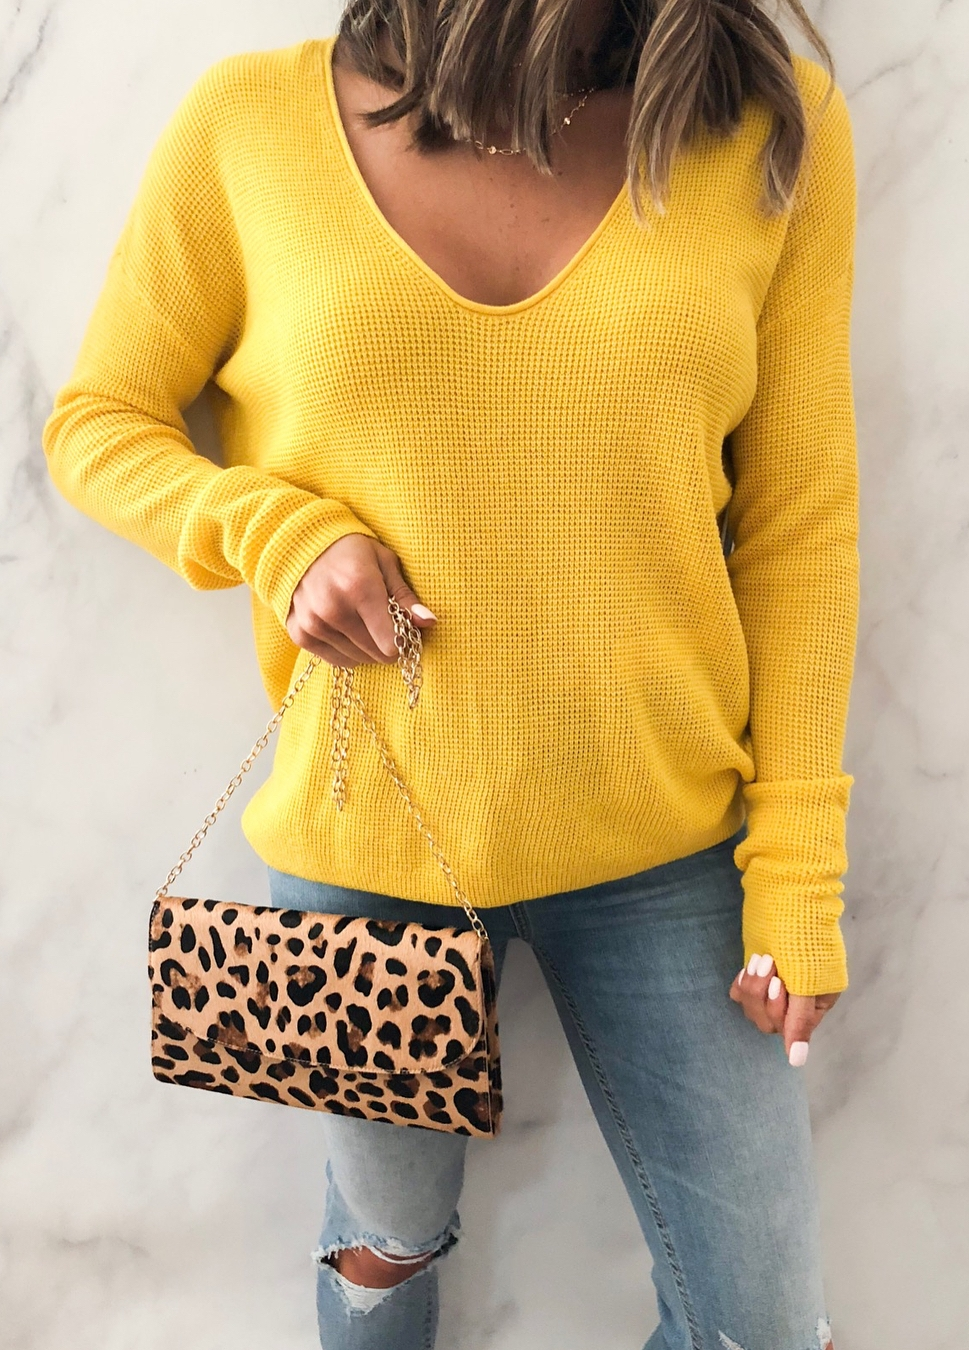 how to style a leopard bag : yellow v-neck sweater + skinnies